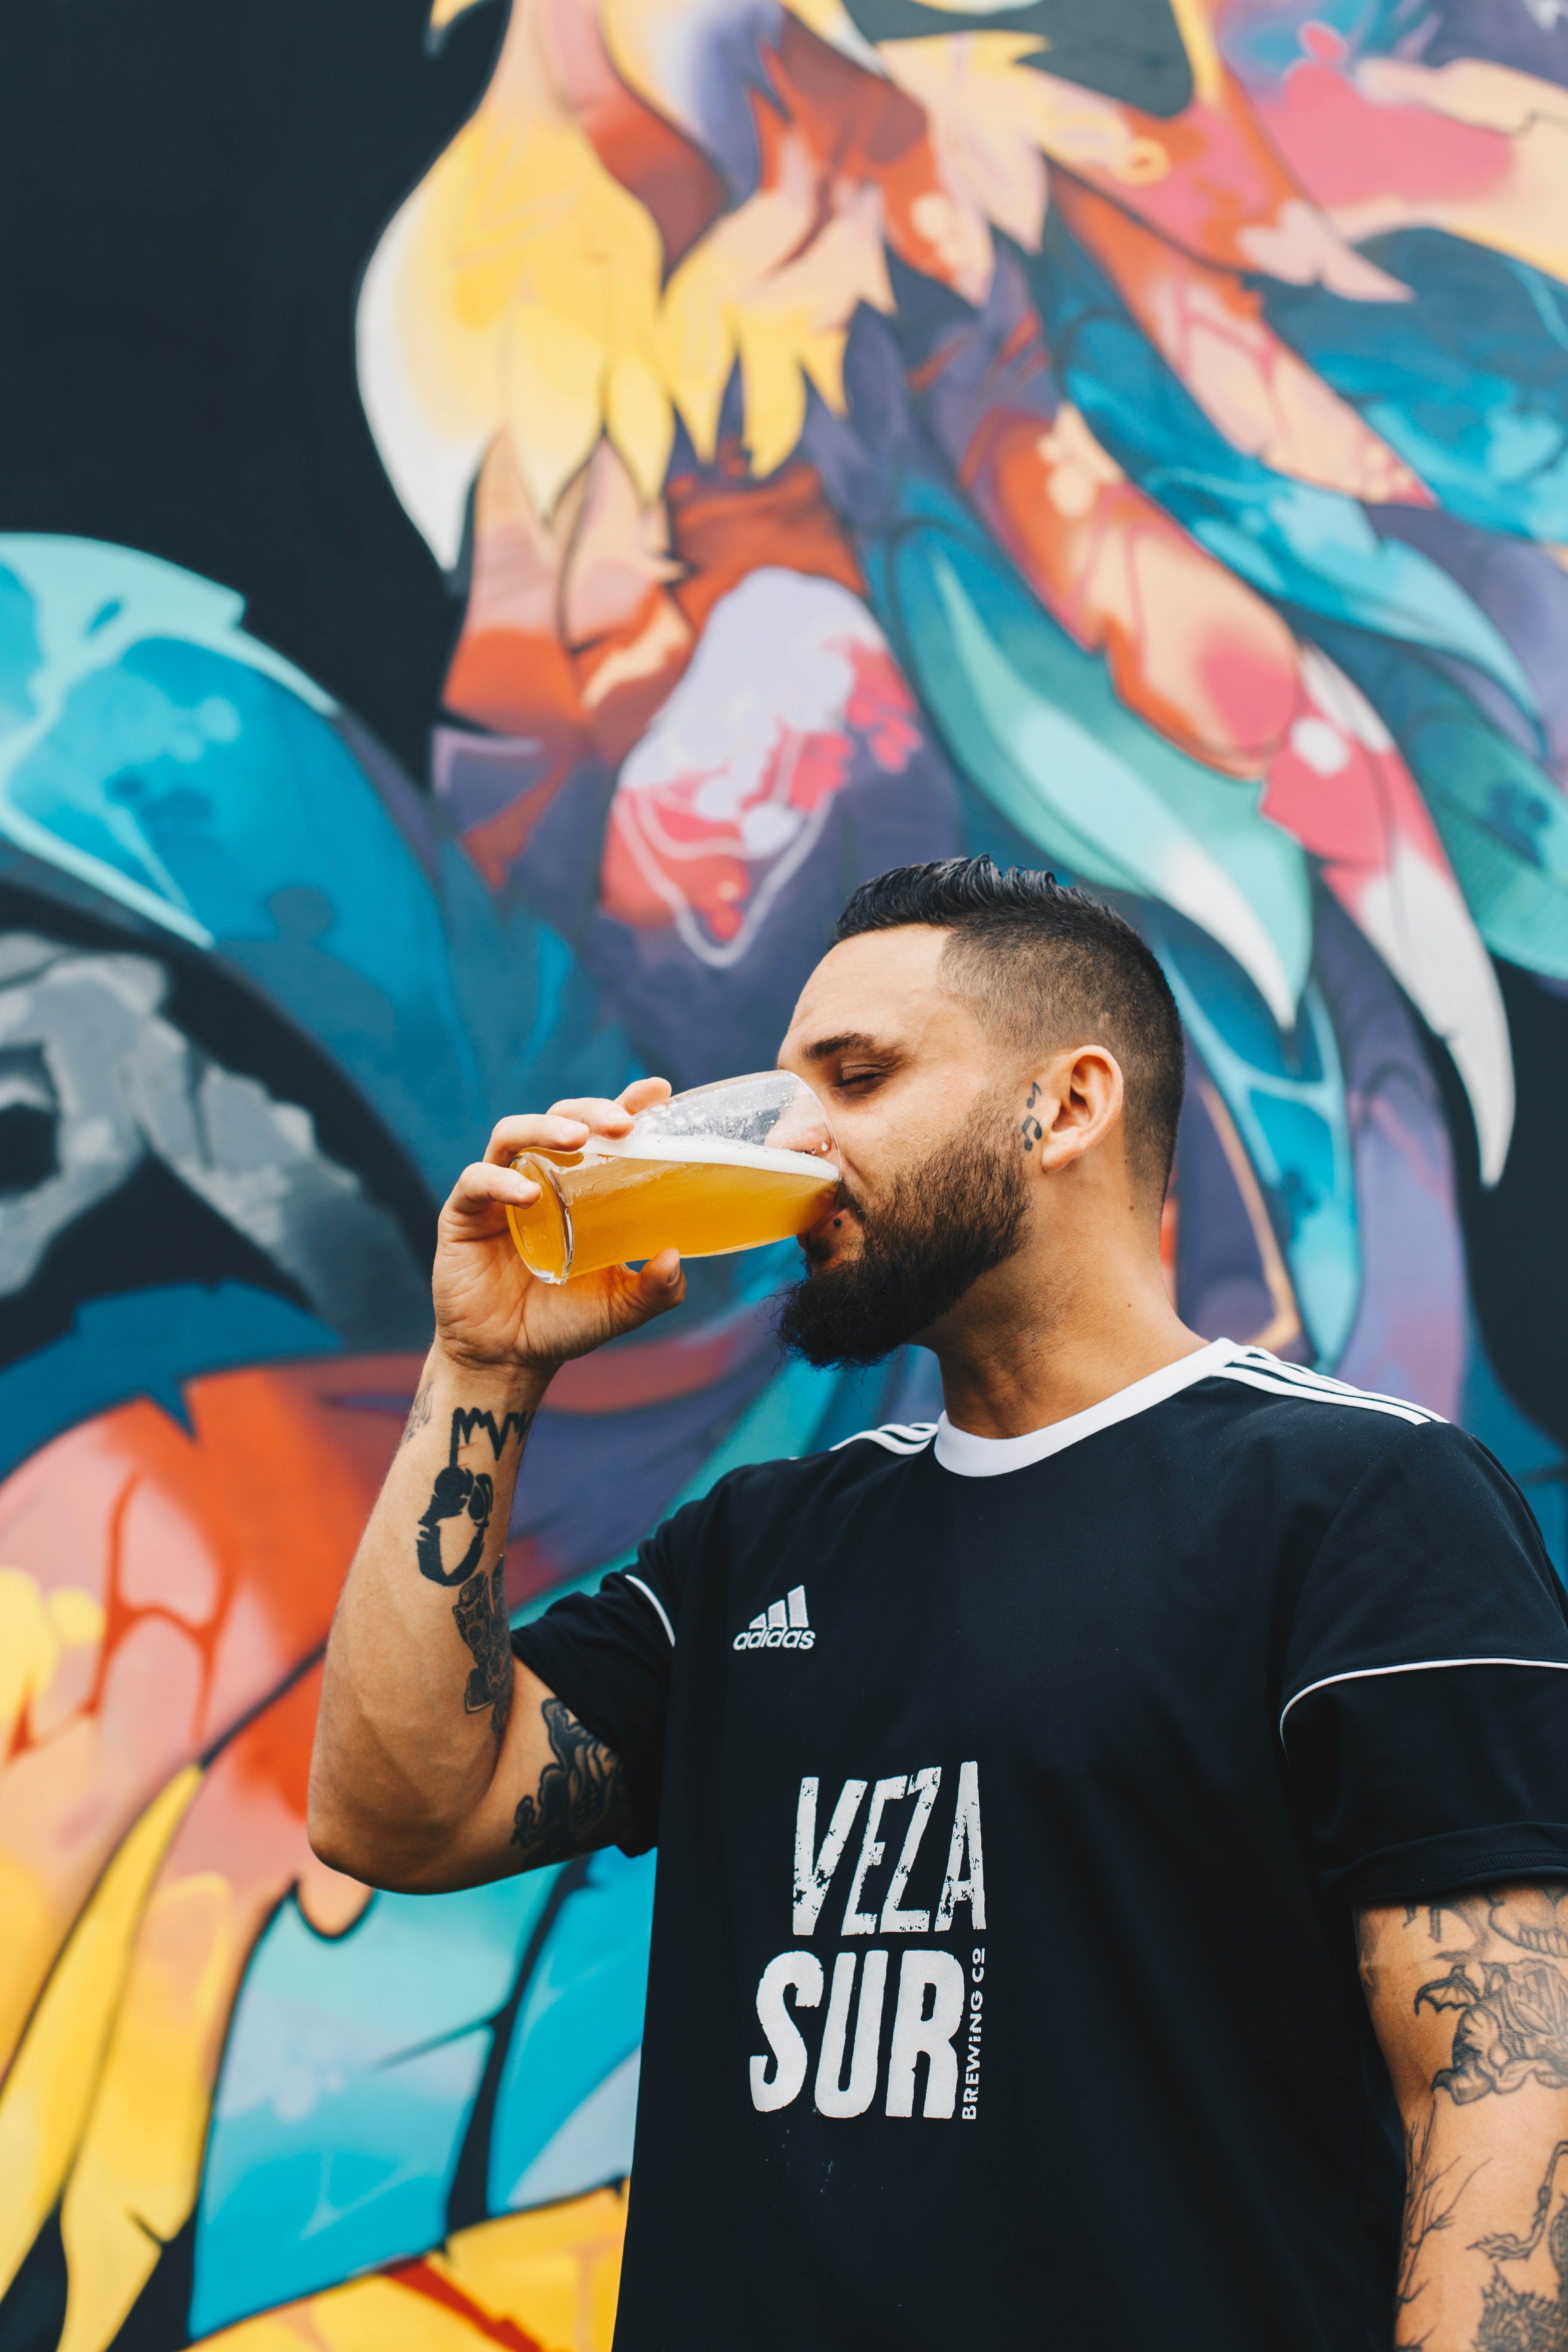 Tattooed Man Drinking on Clear Drinking Glass in Front of Multicolored Painted Wall